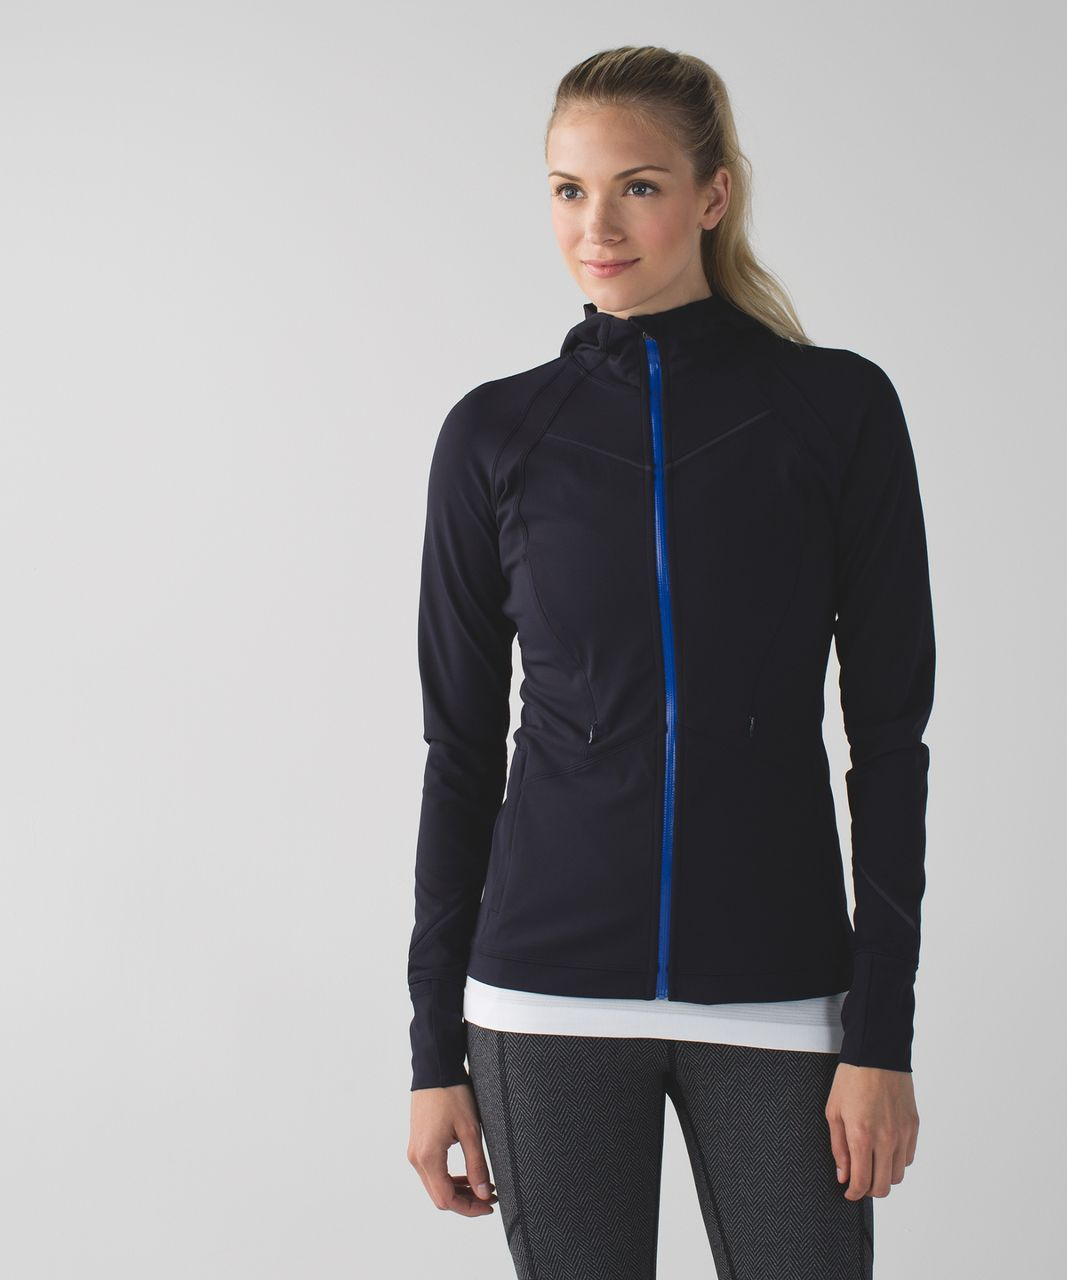 Lululemon Rain-On Train-On Jacket - Naval Blue